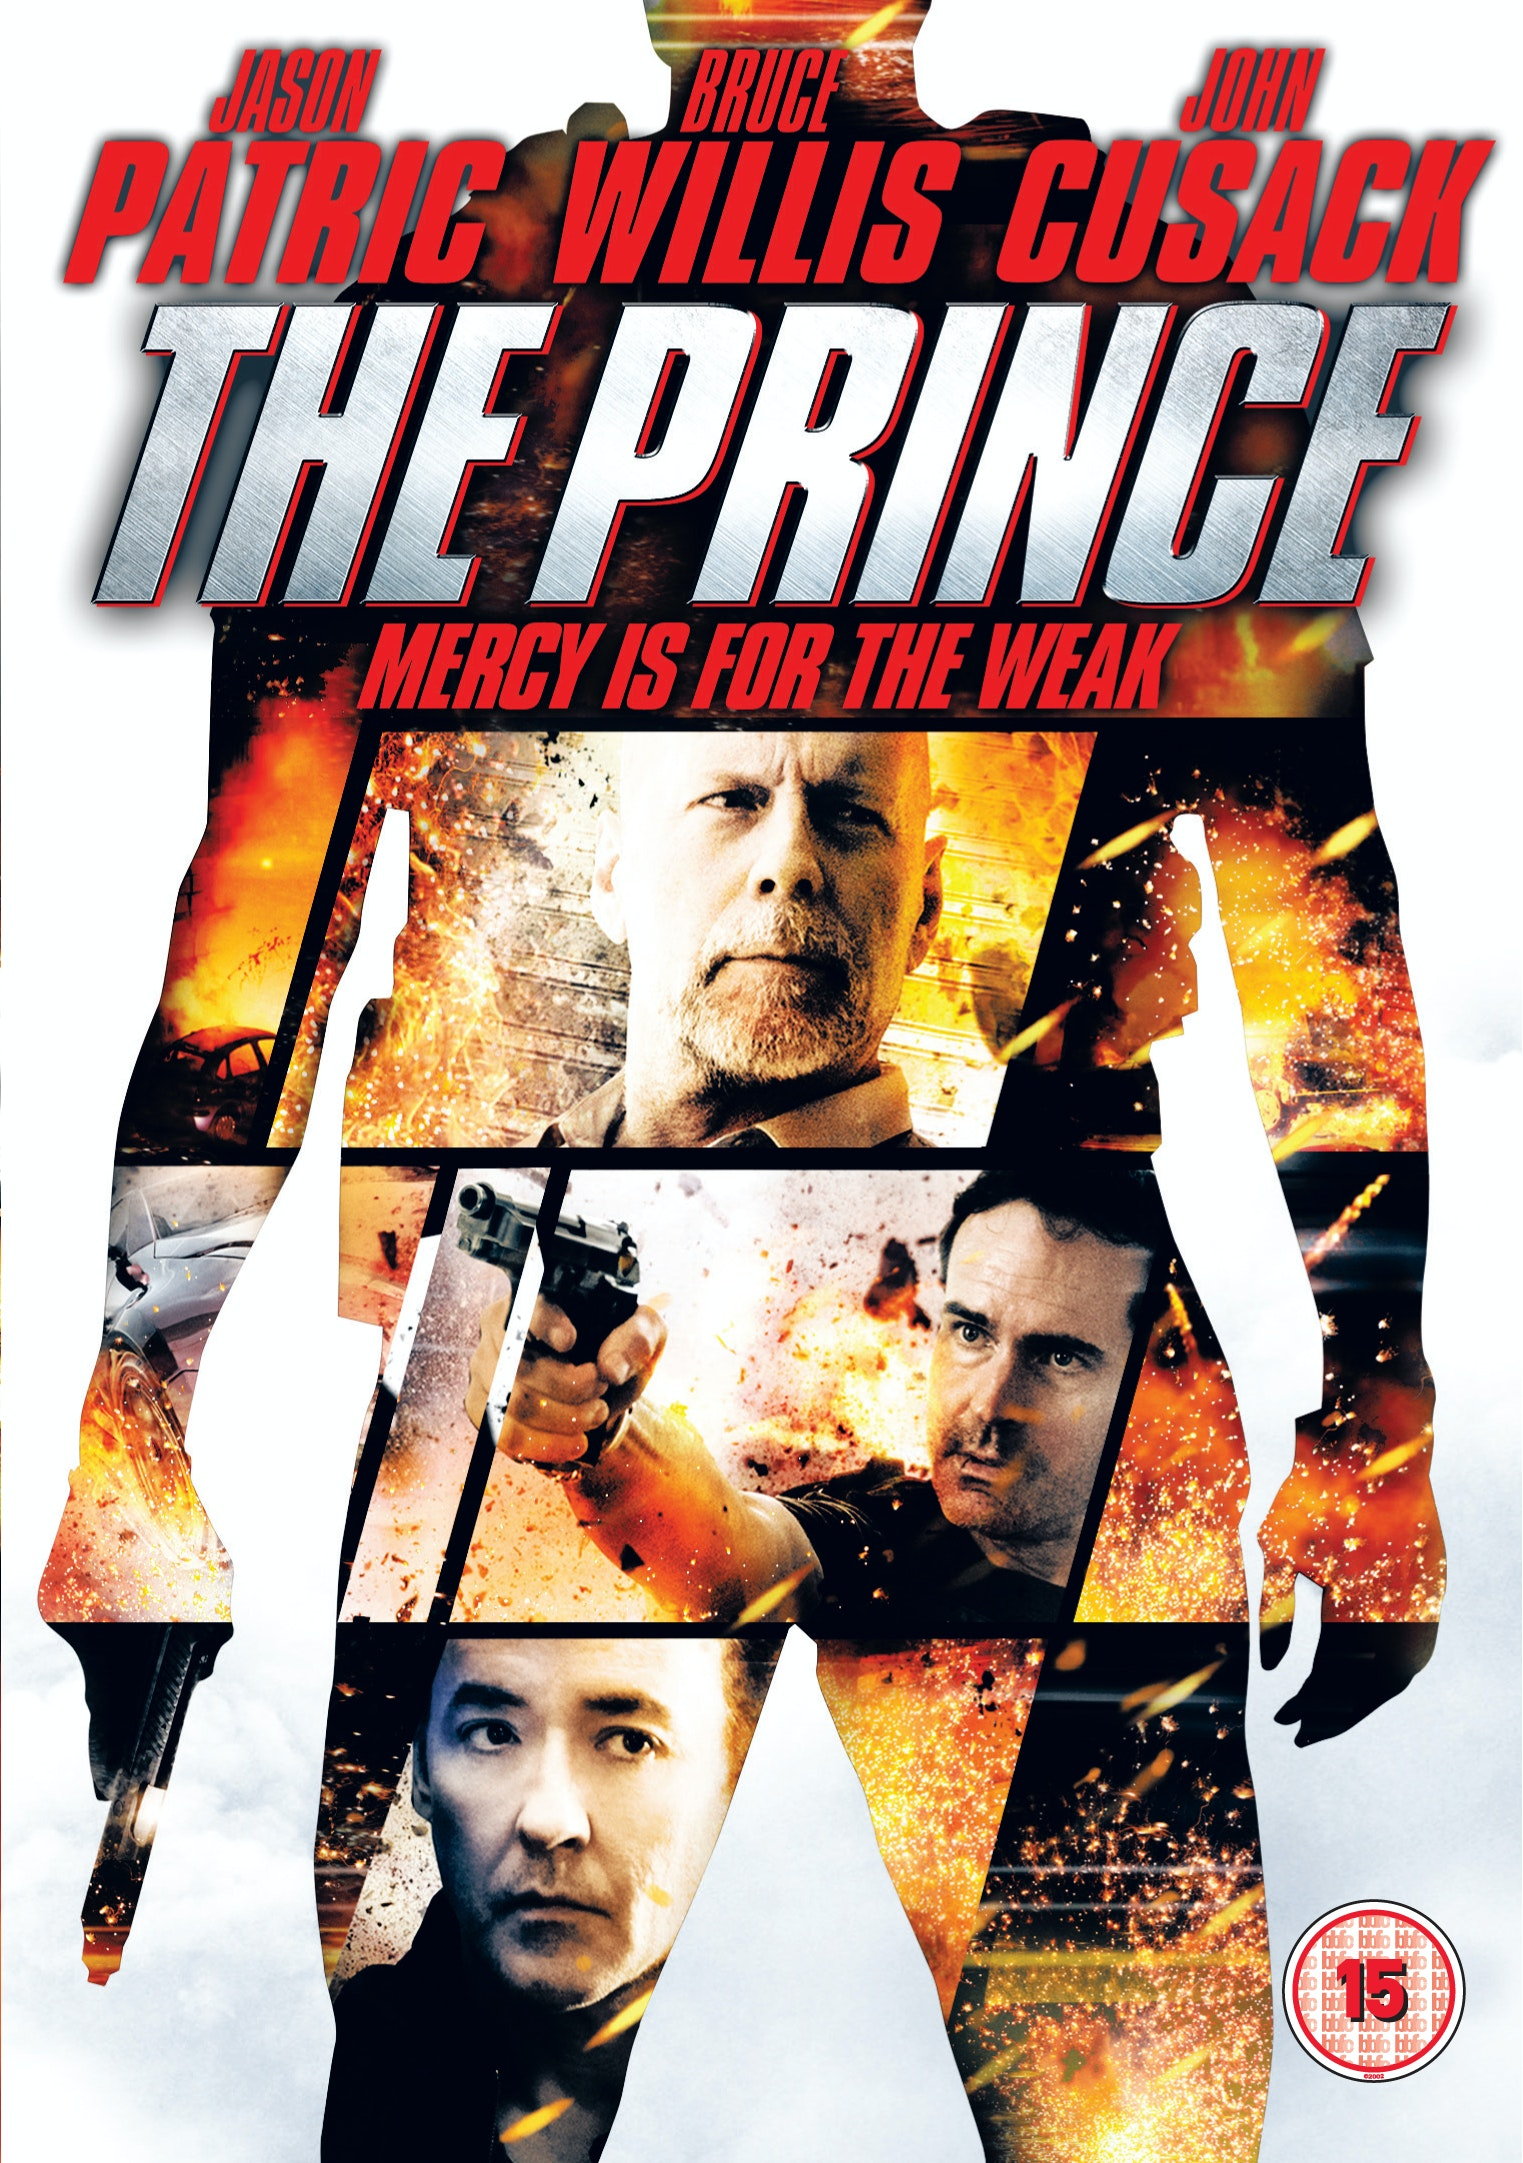 WIN A DVD COPY OF THE PRINCE STARRING BRUCE WILLIS, JOHN CUSACK AND JESSICA LOWNDES sweepstakes